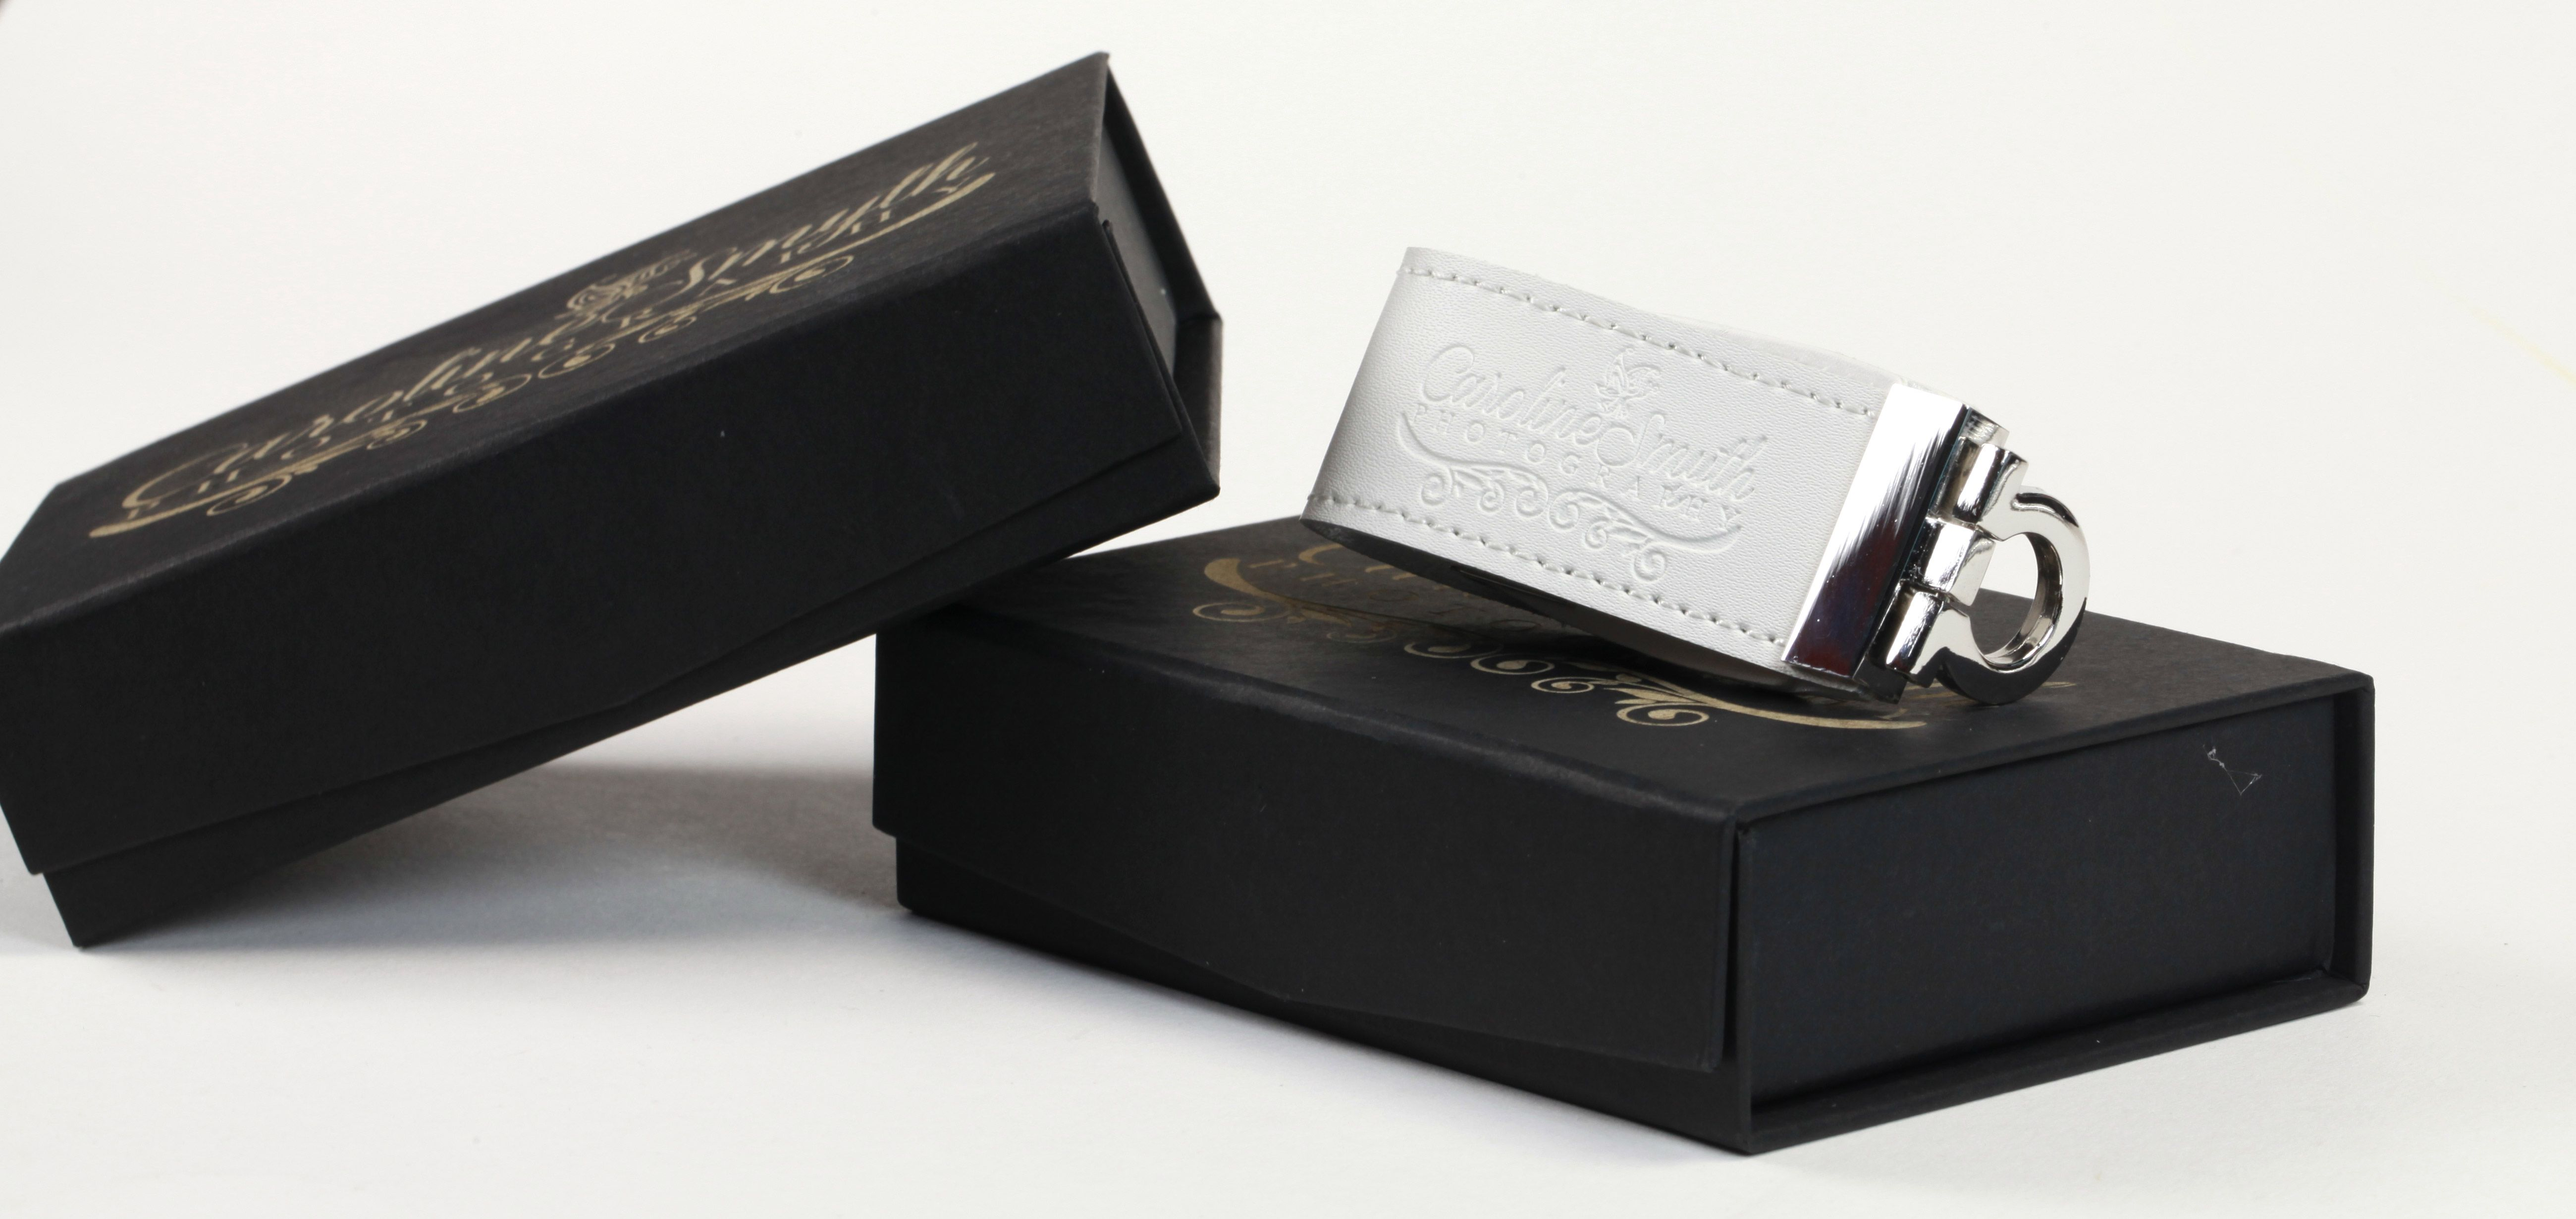 Wedding Photography Presentation Boxes: Ou Black Engraved USB Gift Box Shown Here With Our Premium